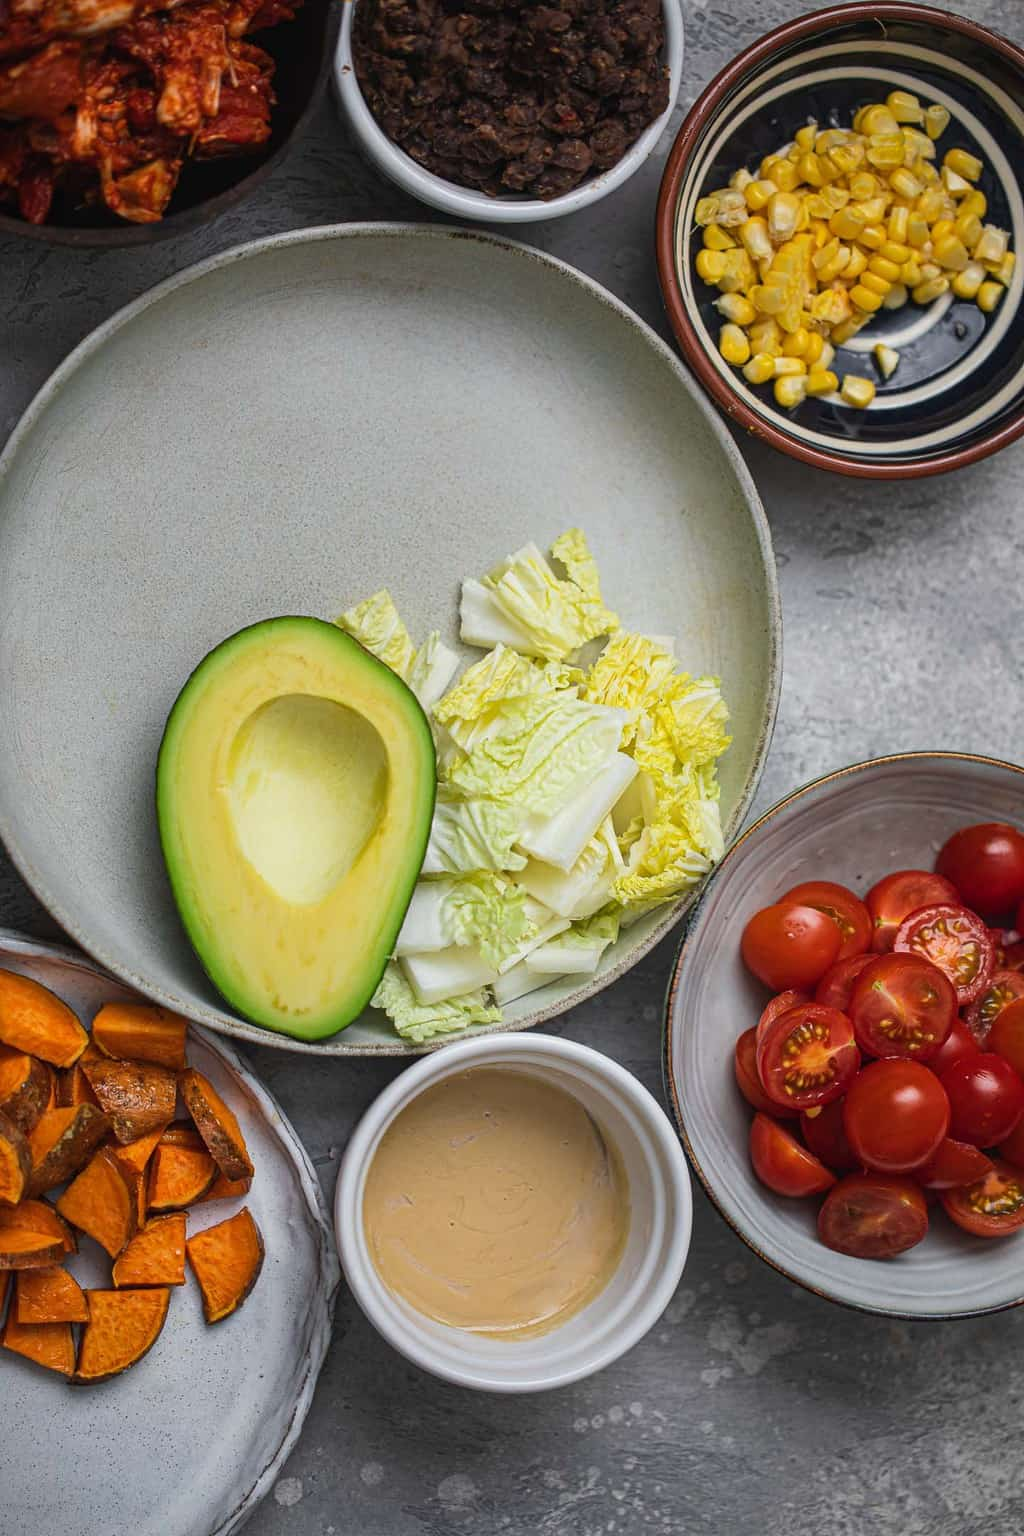 Bowl with avocado and lettuce surrounded by jackfruit, tomatoes, sweet potatoes, tahini, sweetcorn, and black beans